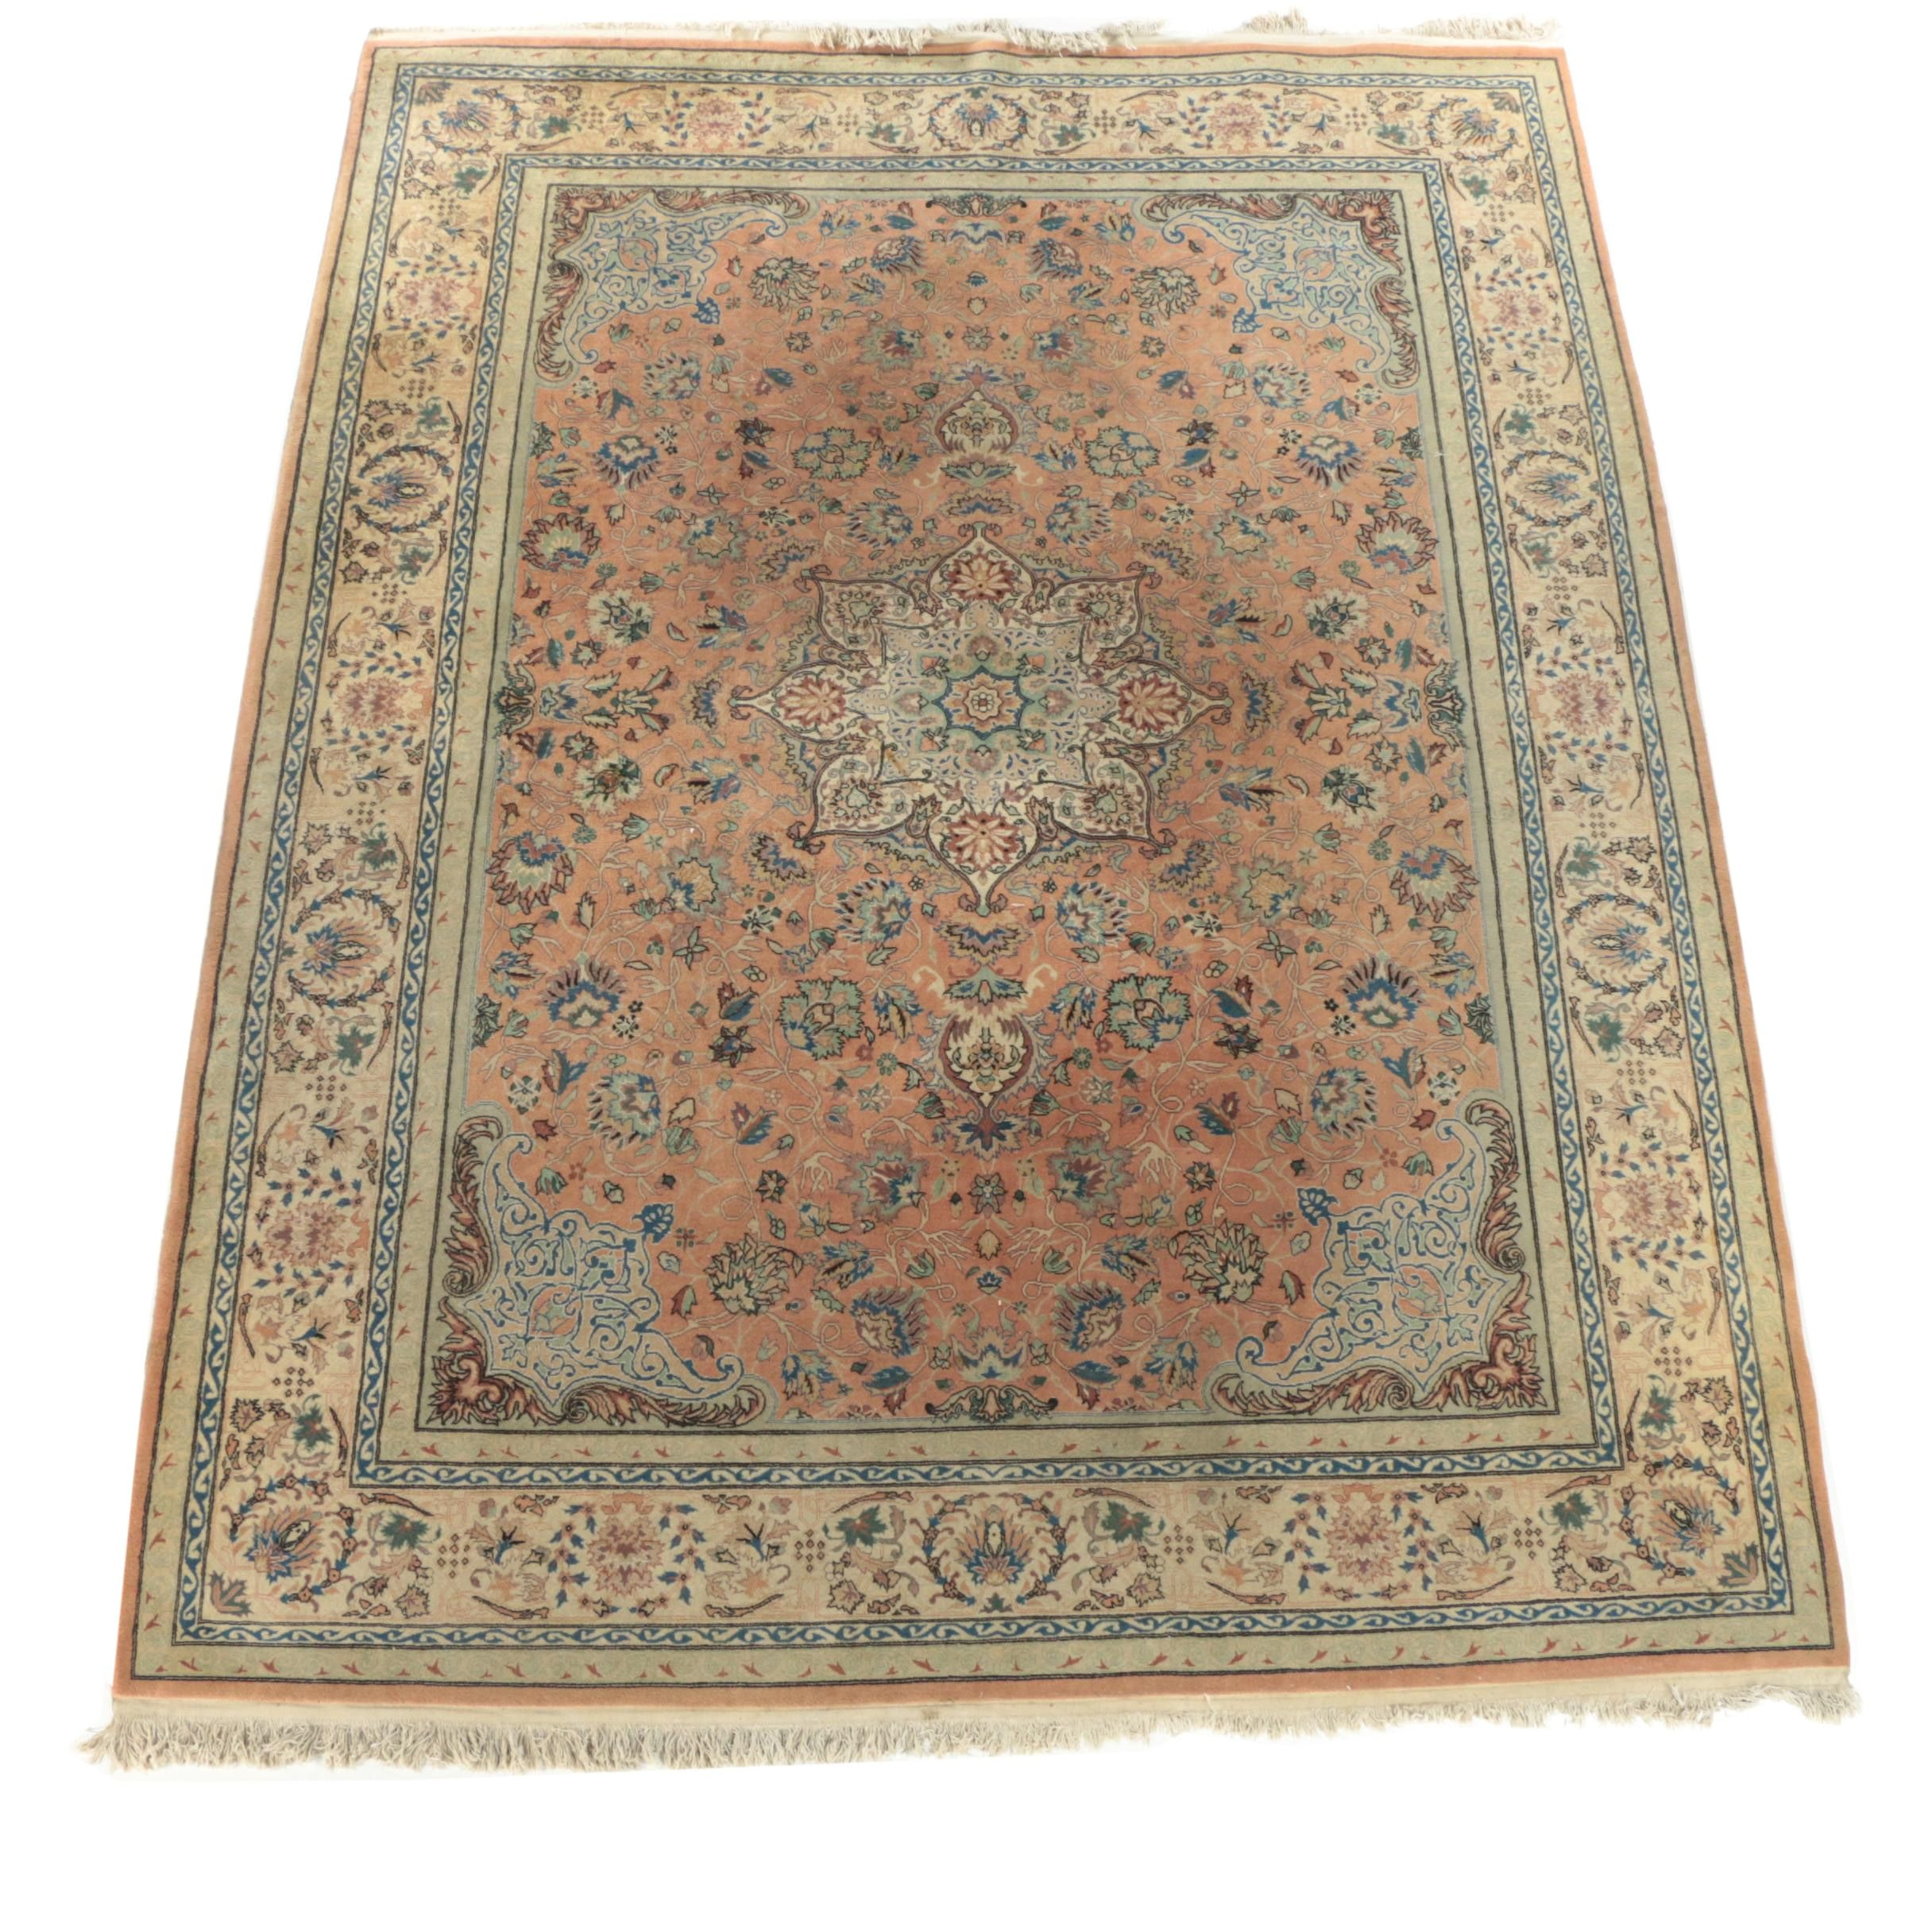 Finely Hand-Knotted Persian Tabriz Wool Room Sized Rug